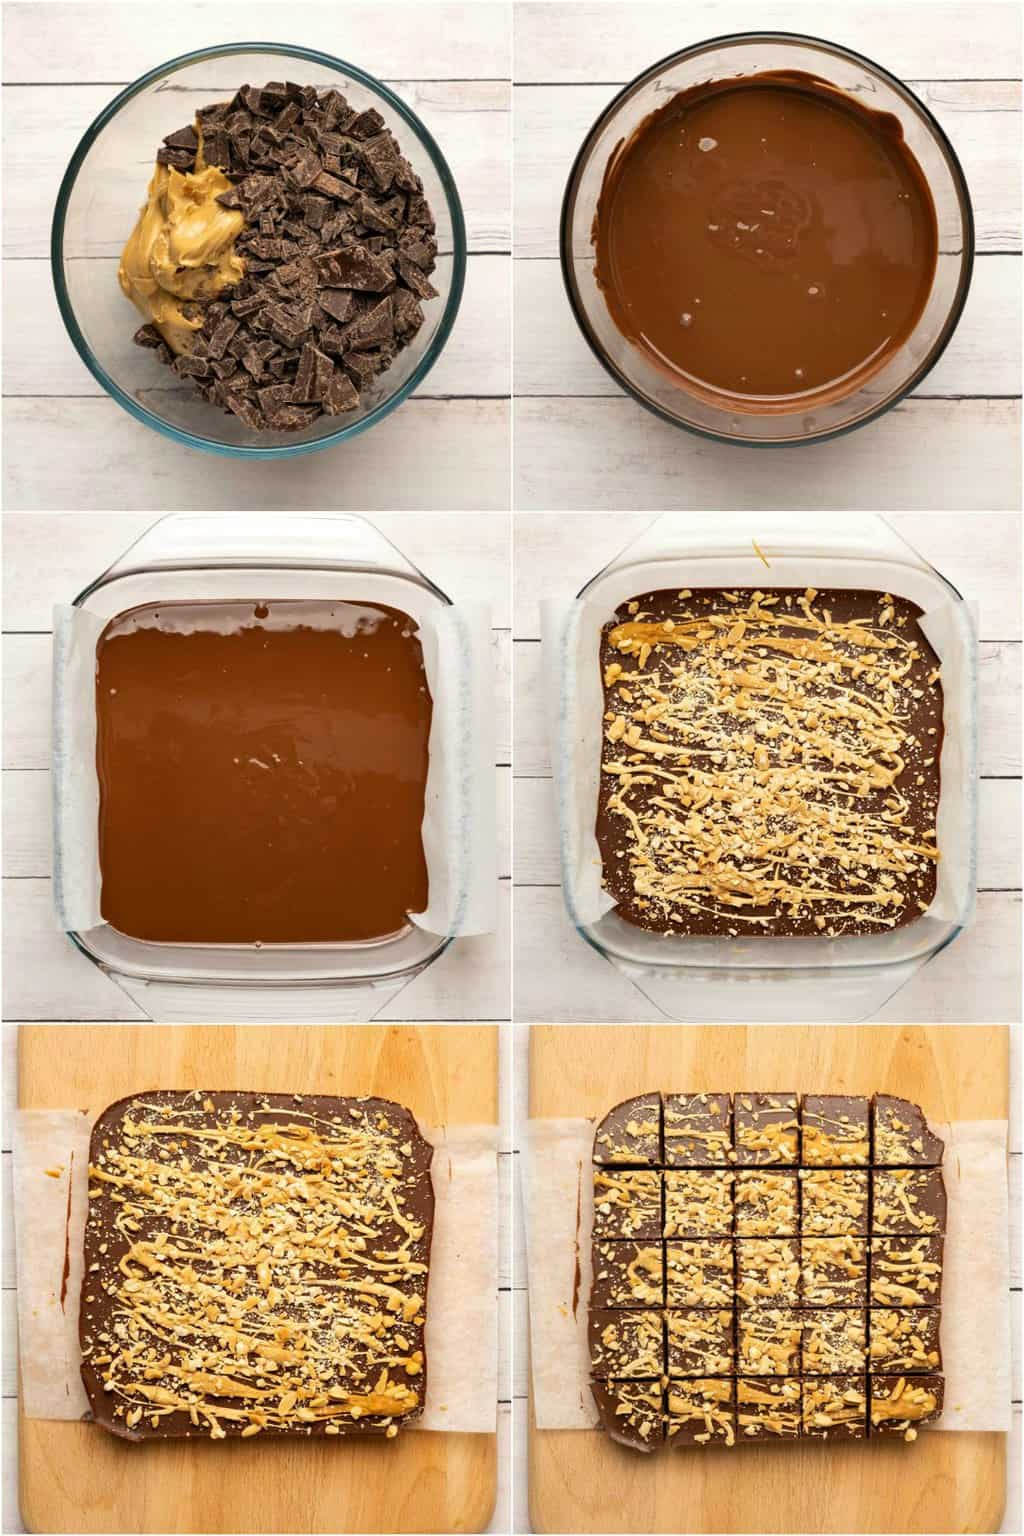 Step by step process photo collage of making vegan chocolate peanut butter fudge.